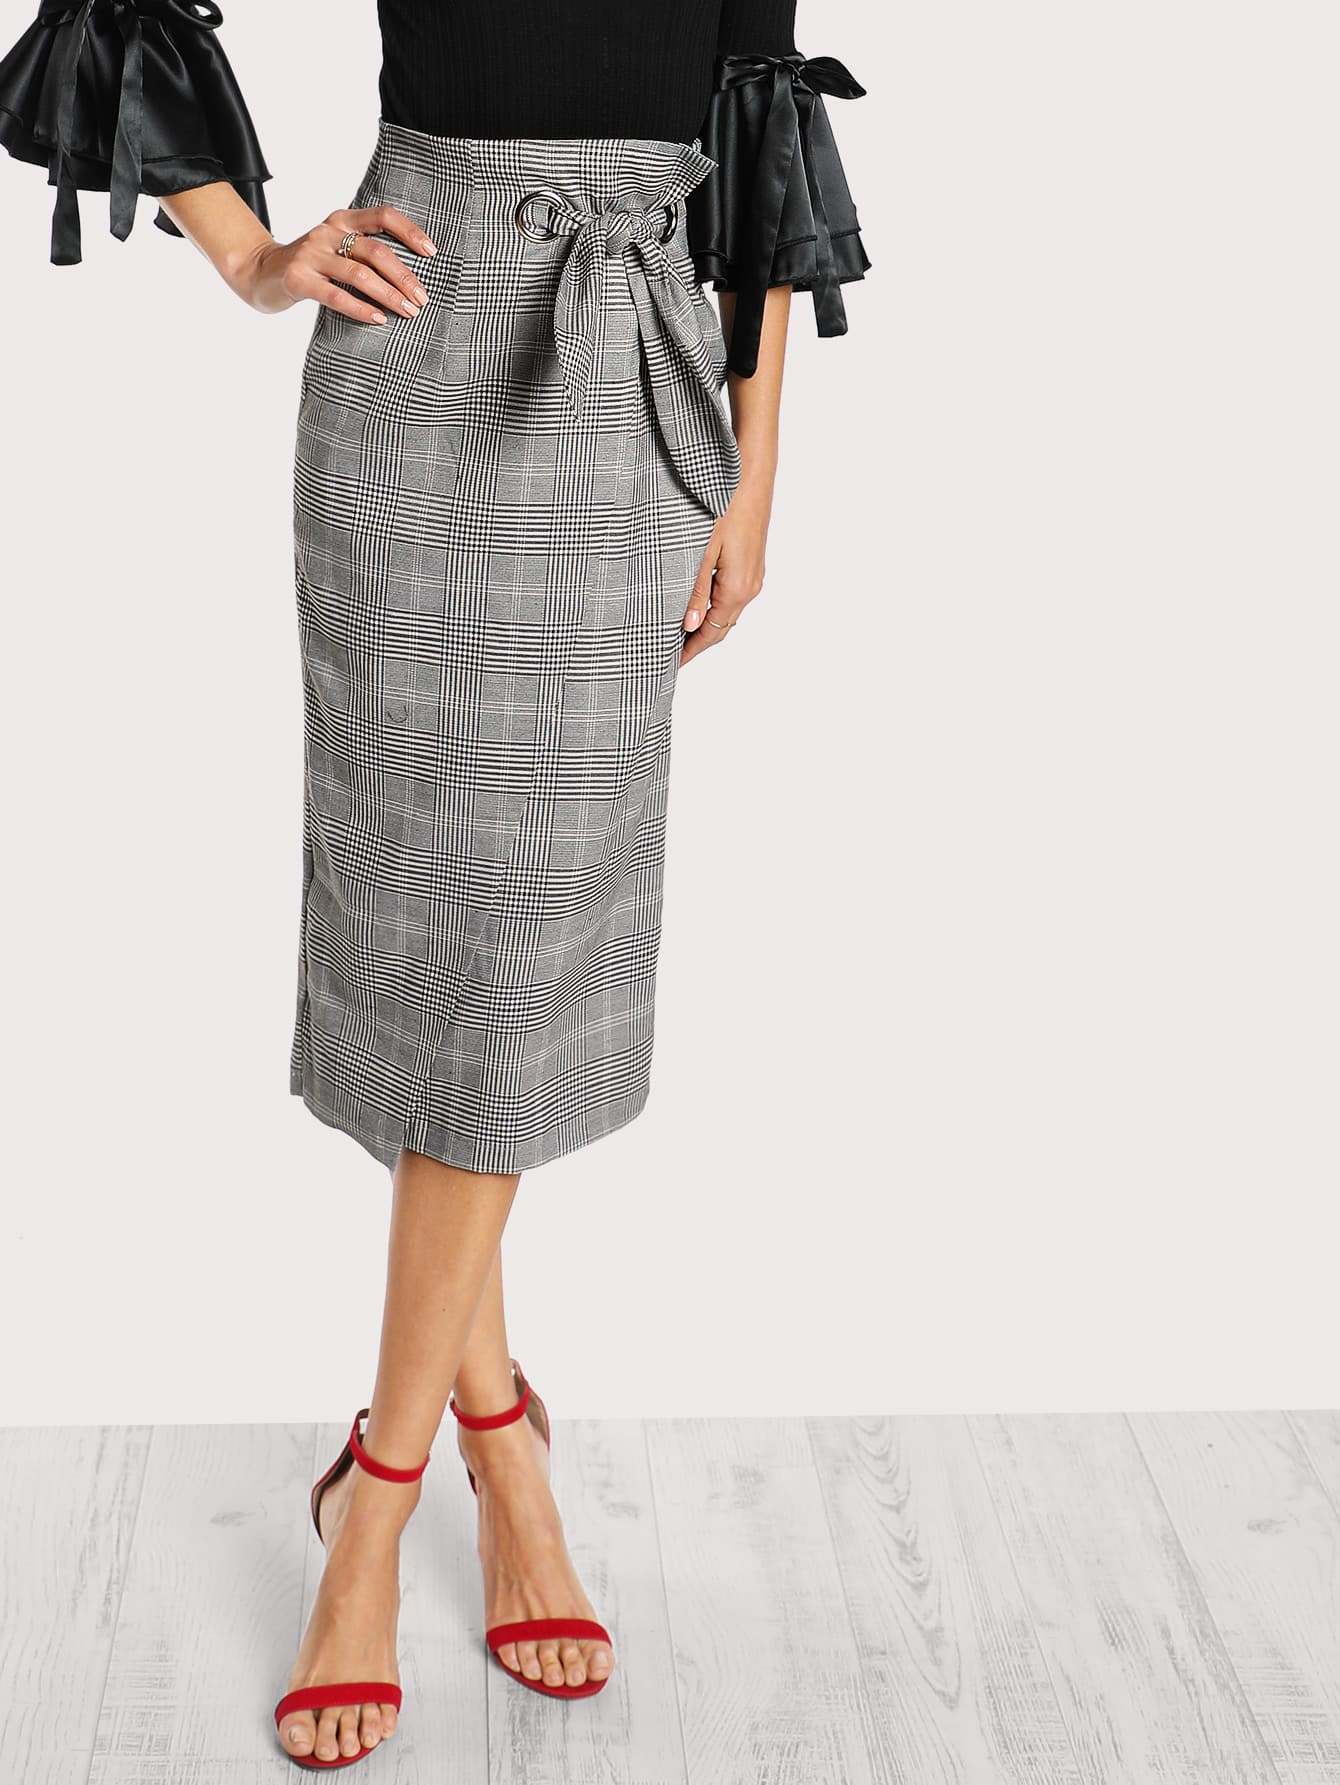 Grommet Detail Bow Tie Plaid Wrap Skirt drop shoulder grommet tie detail sweatshirt